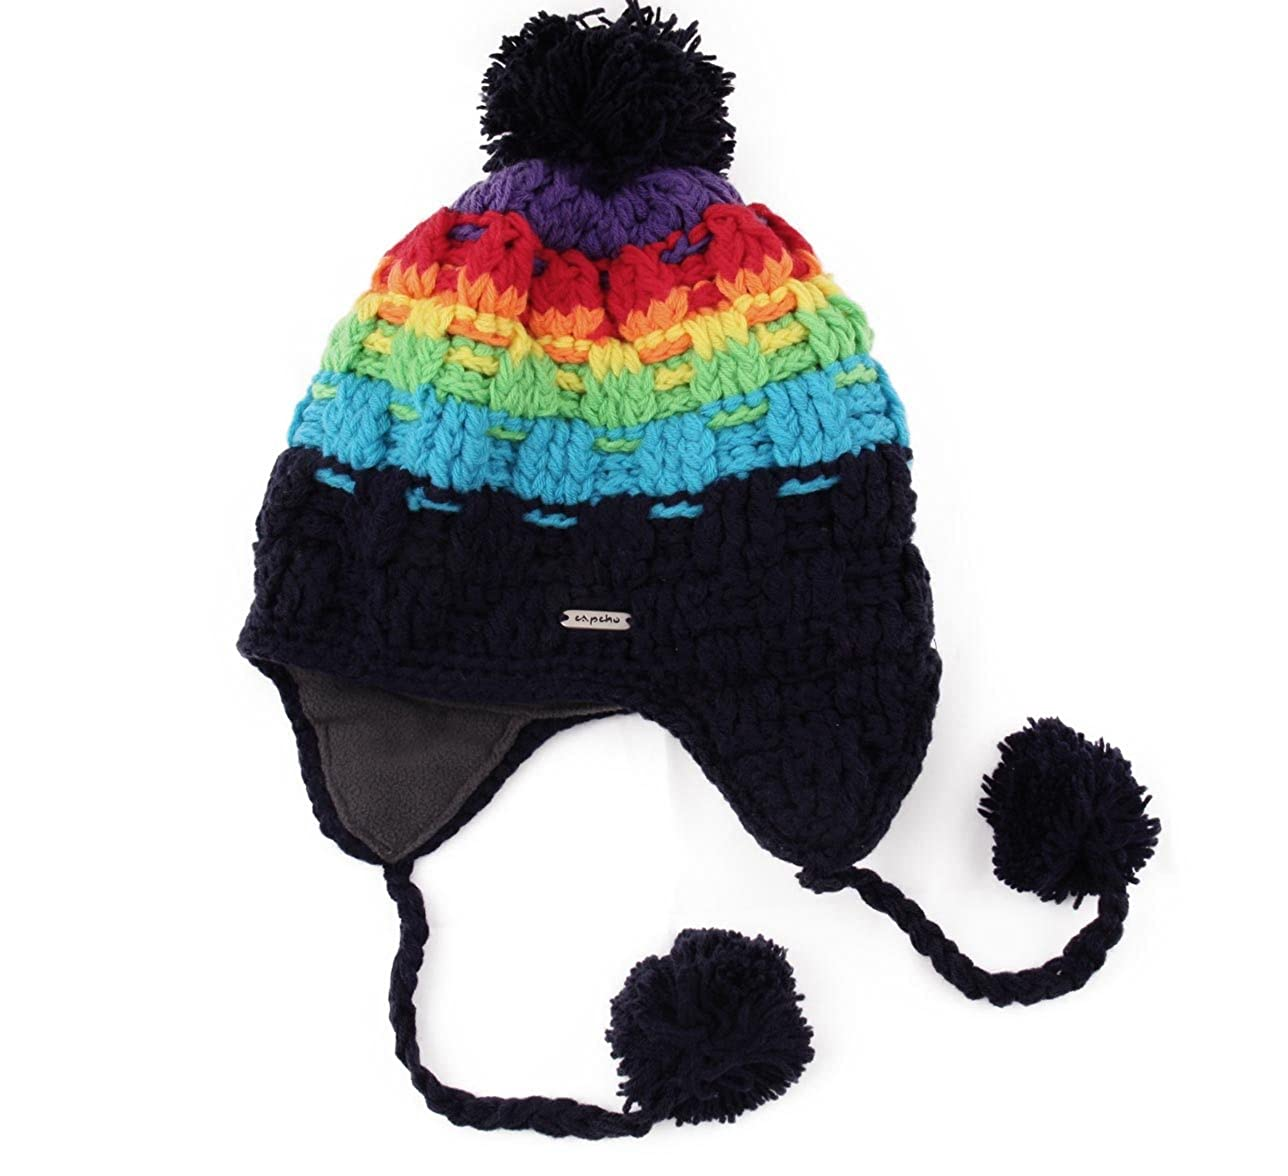 Capcho Big Boys Kid Eskimo Peruvian Beanie